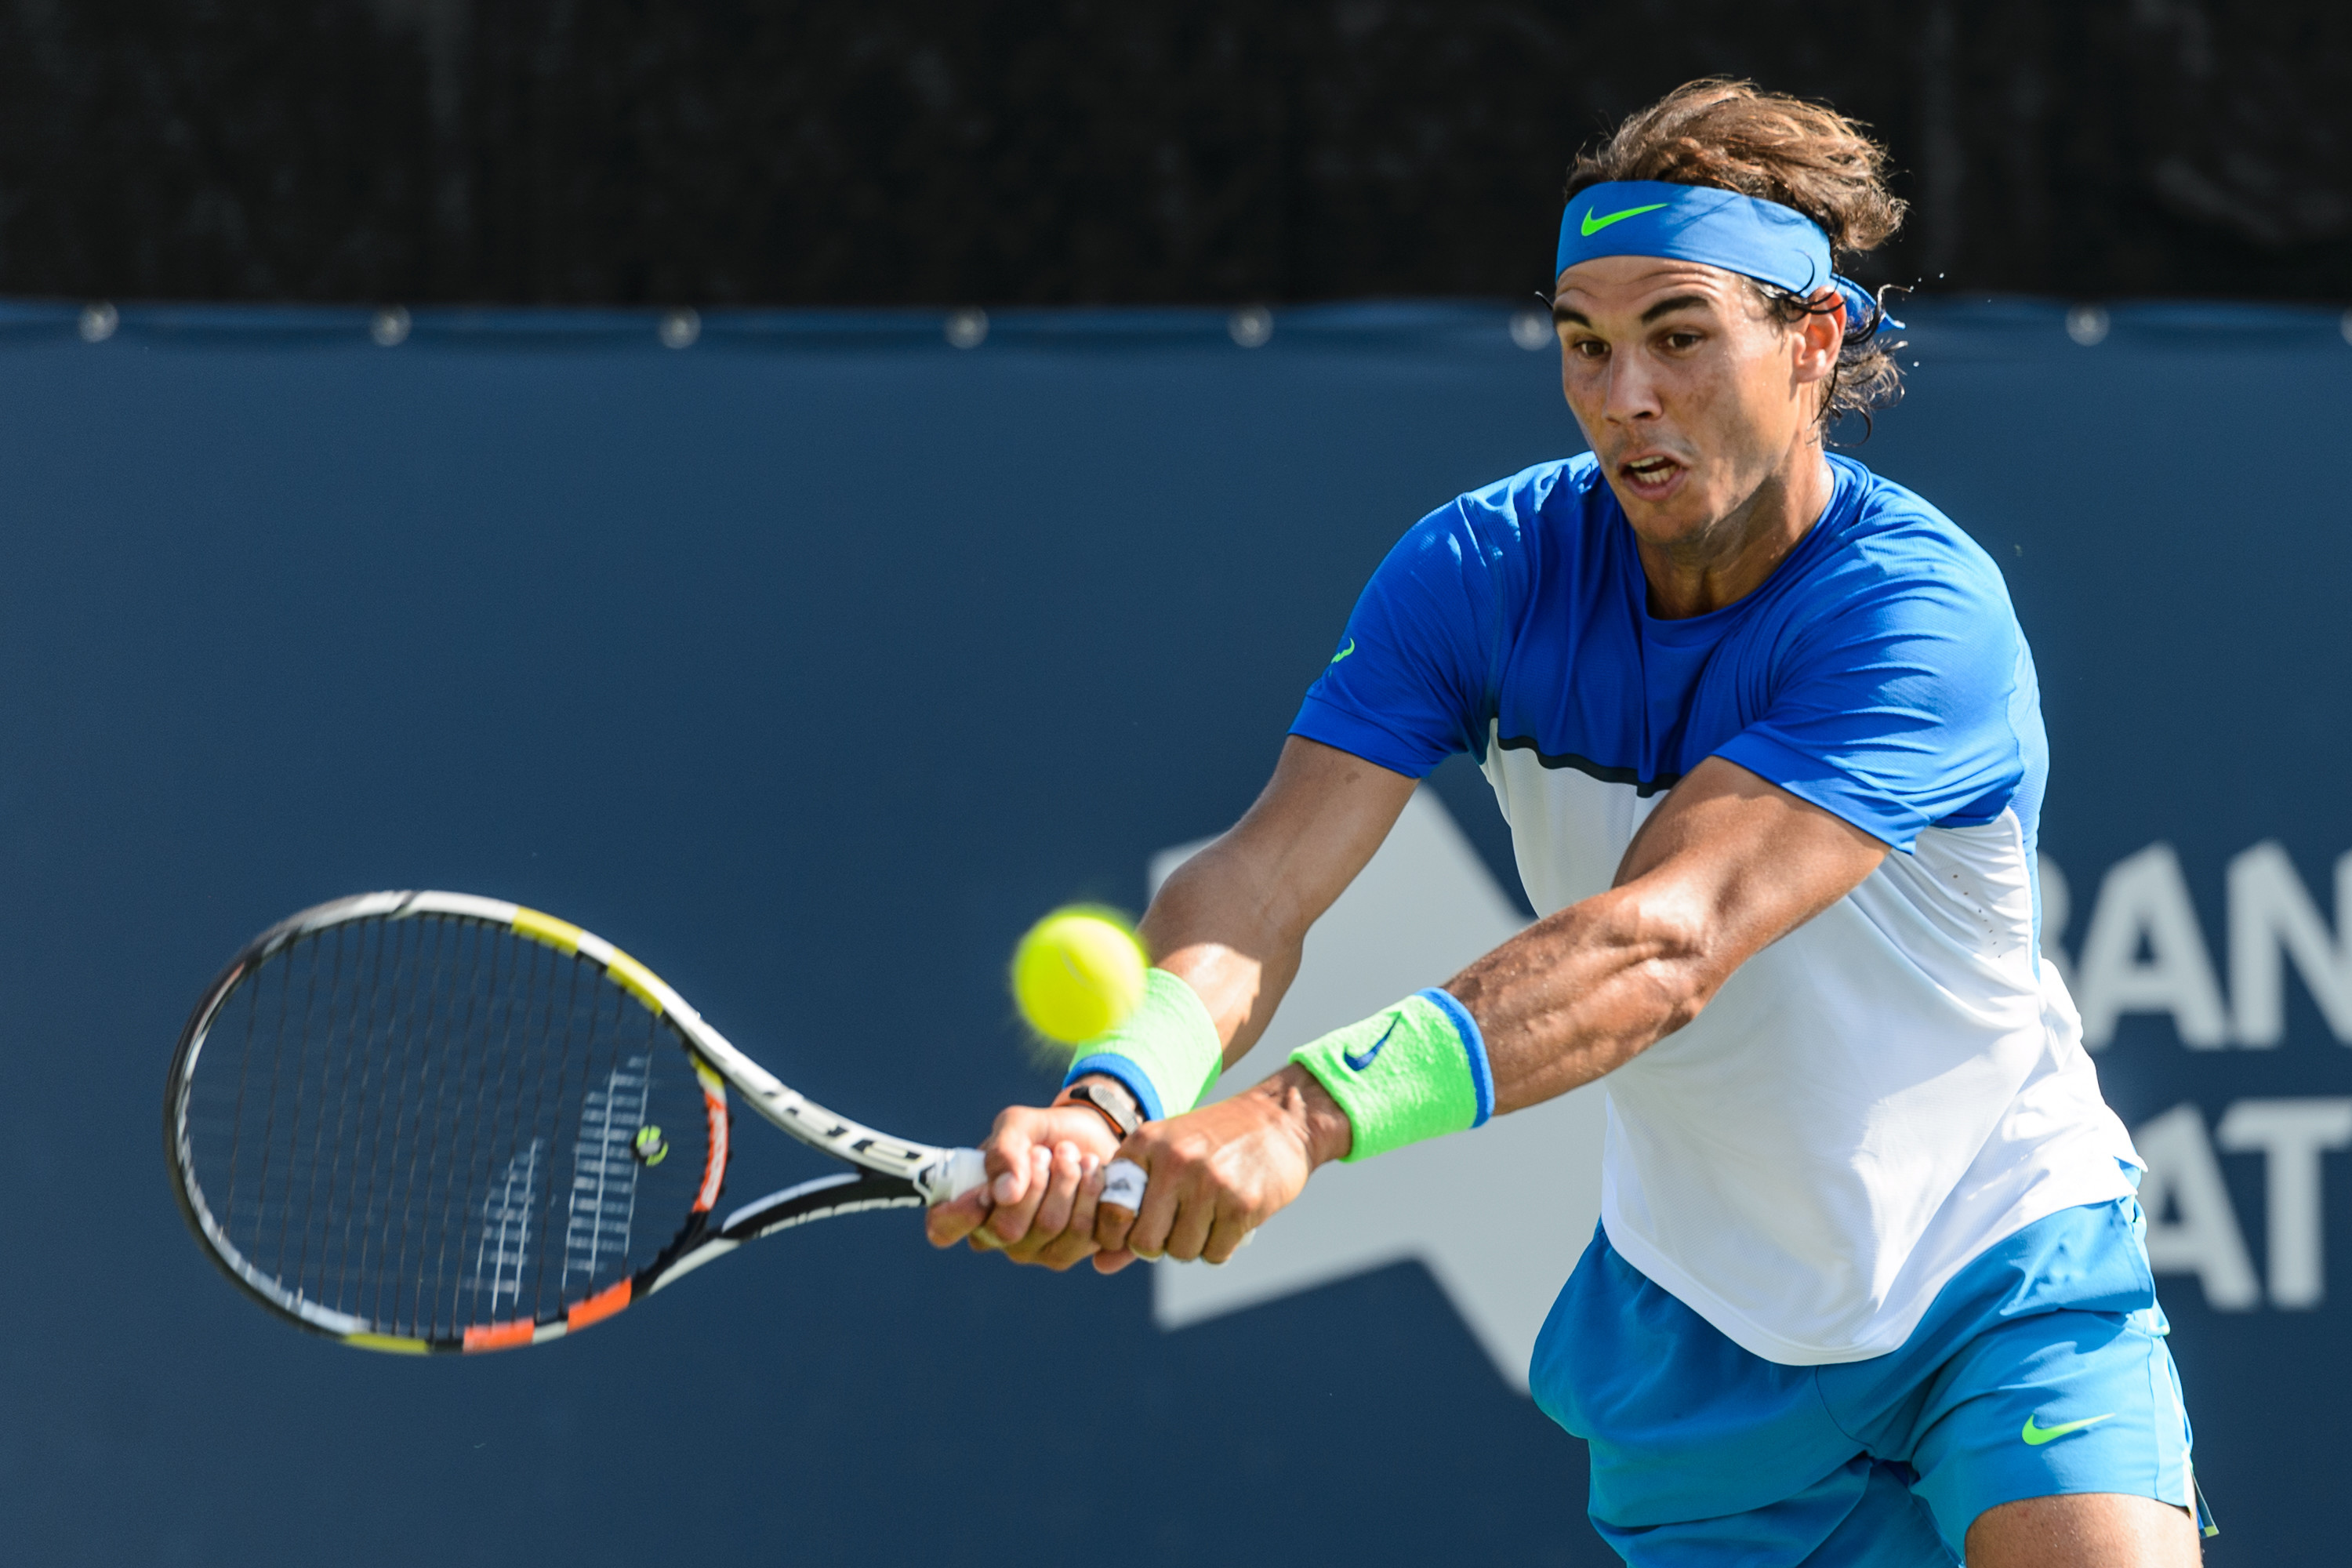 Rogers Cup Montreal - Day 1